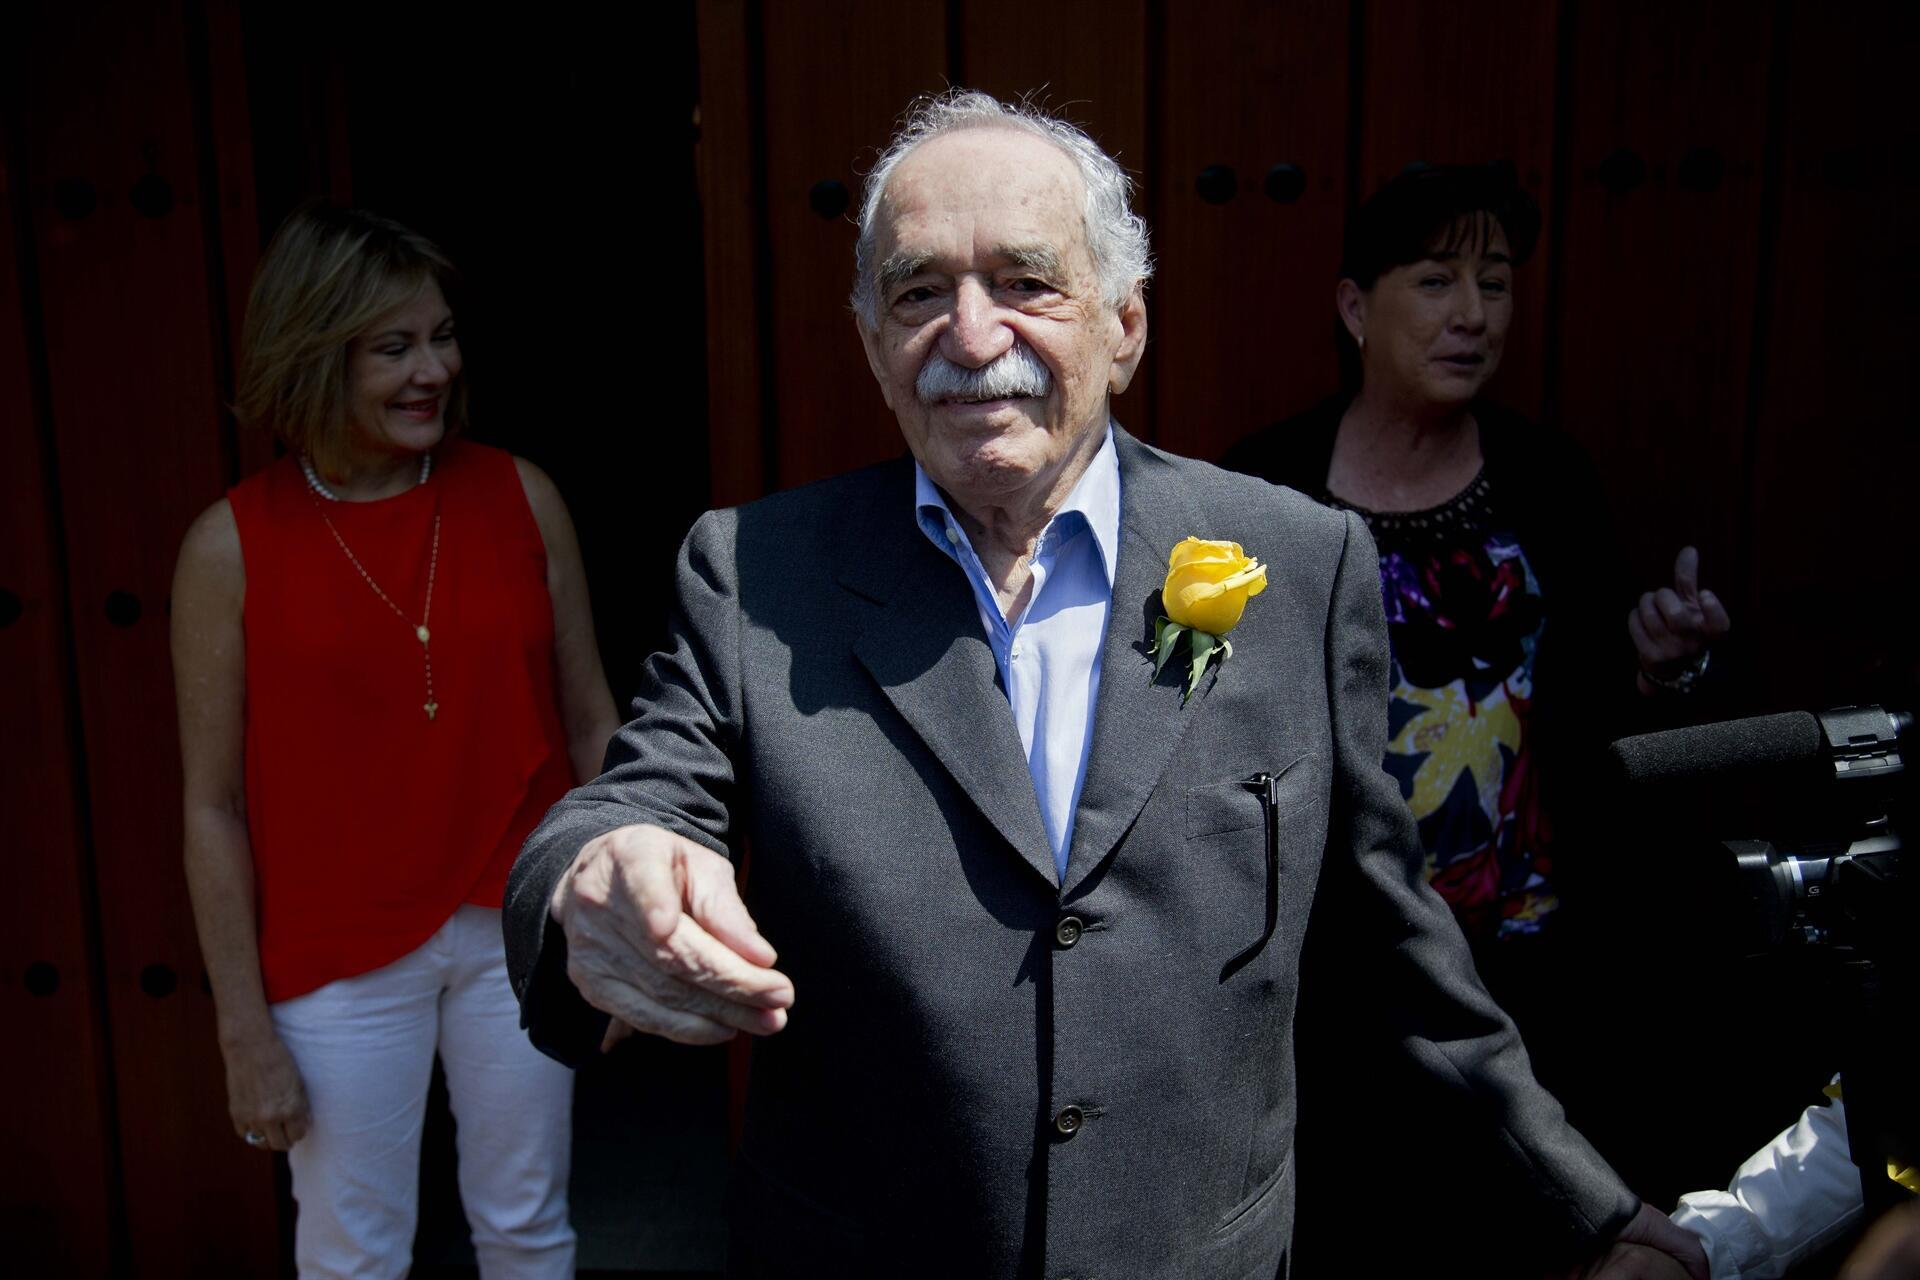 Netflix to film Garcia Marquez's '100 Years of Solitude'